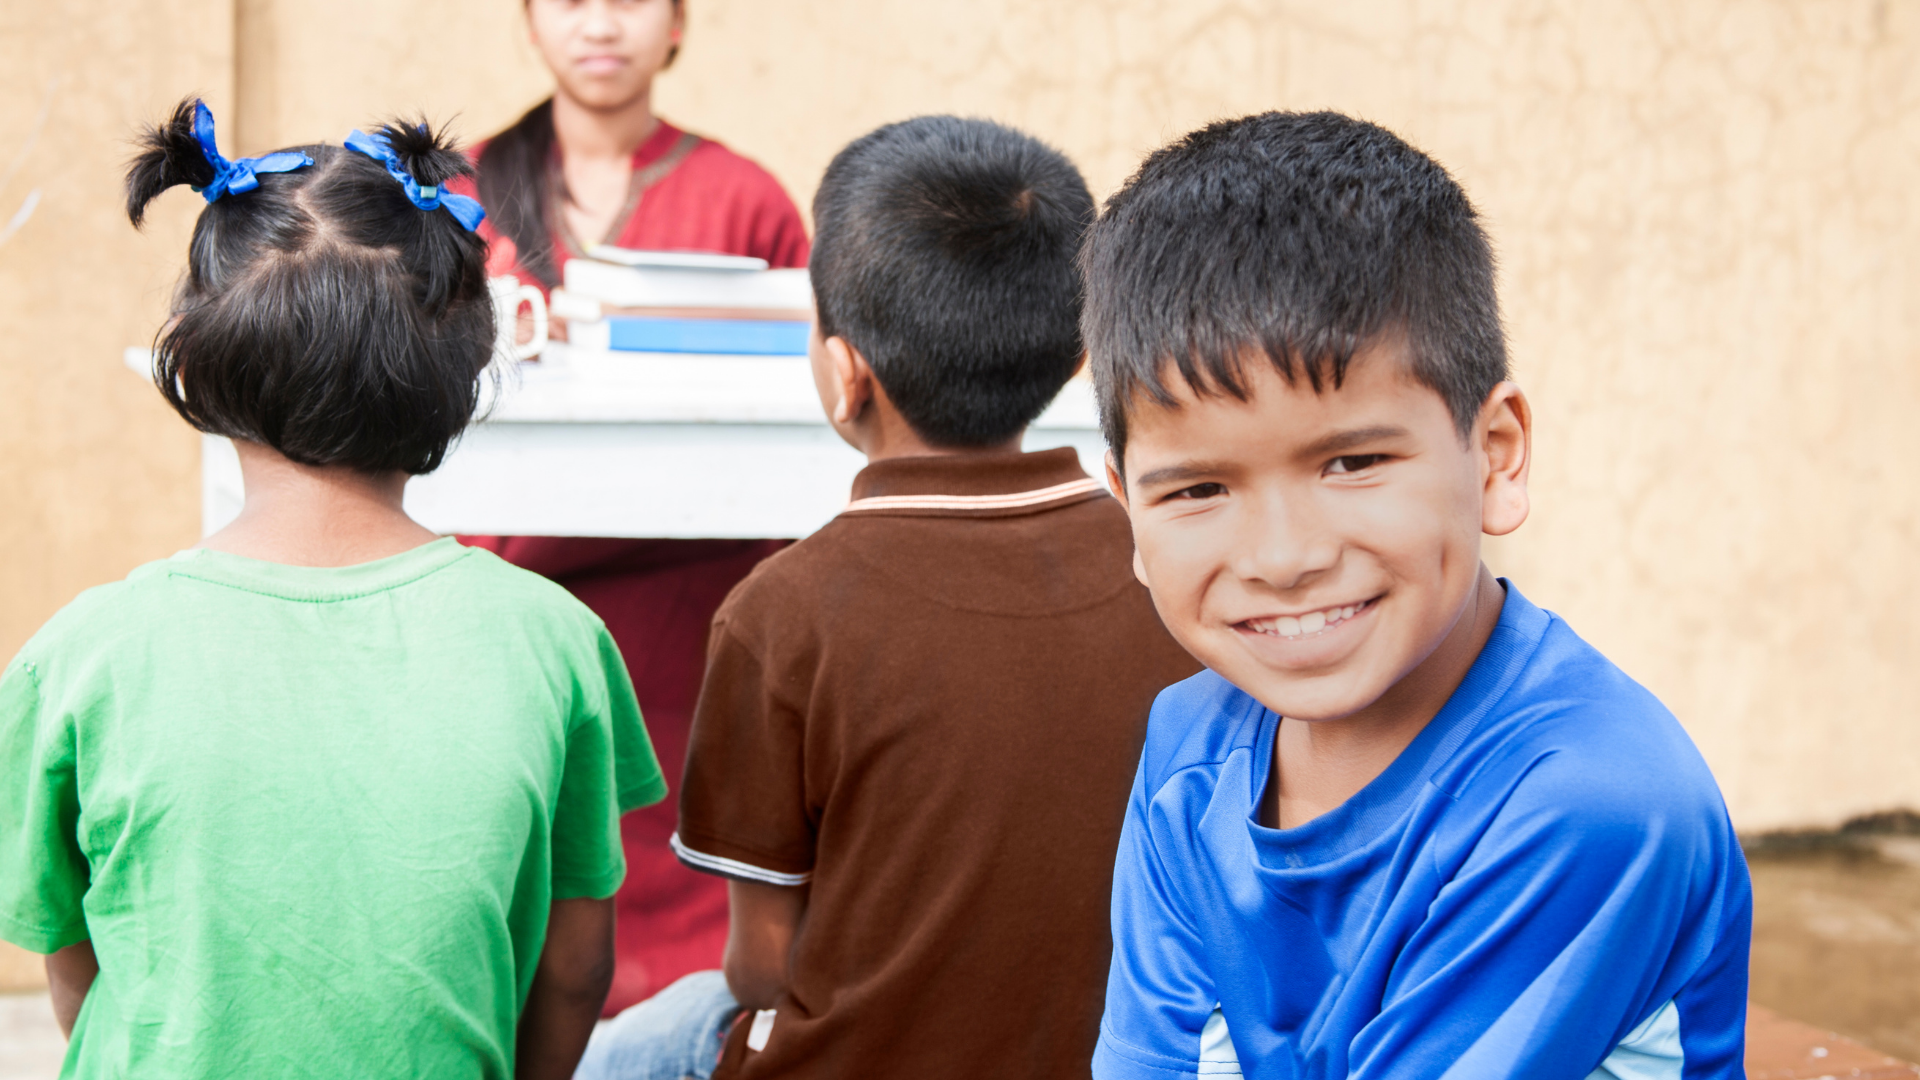 ARTICLE Innovative educational project which ensures children in India have access to a quality education